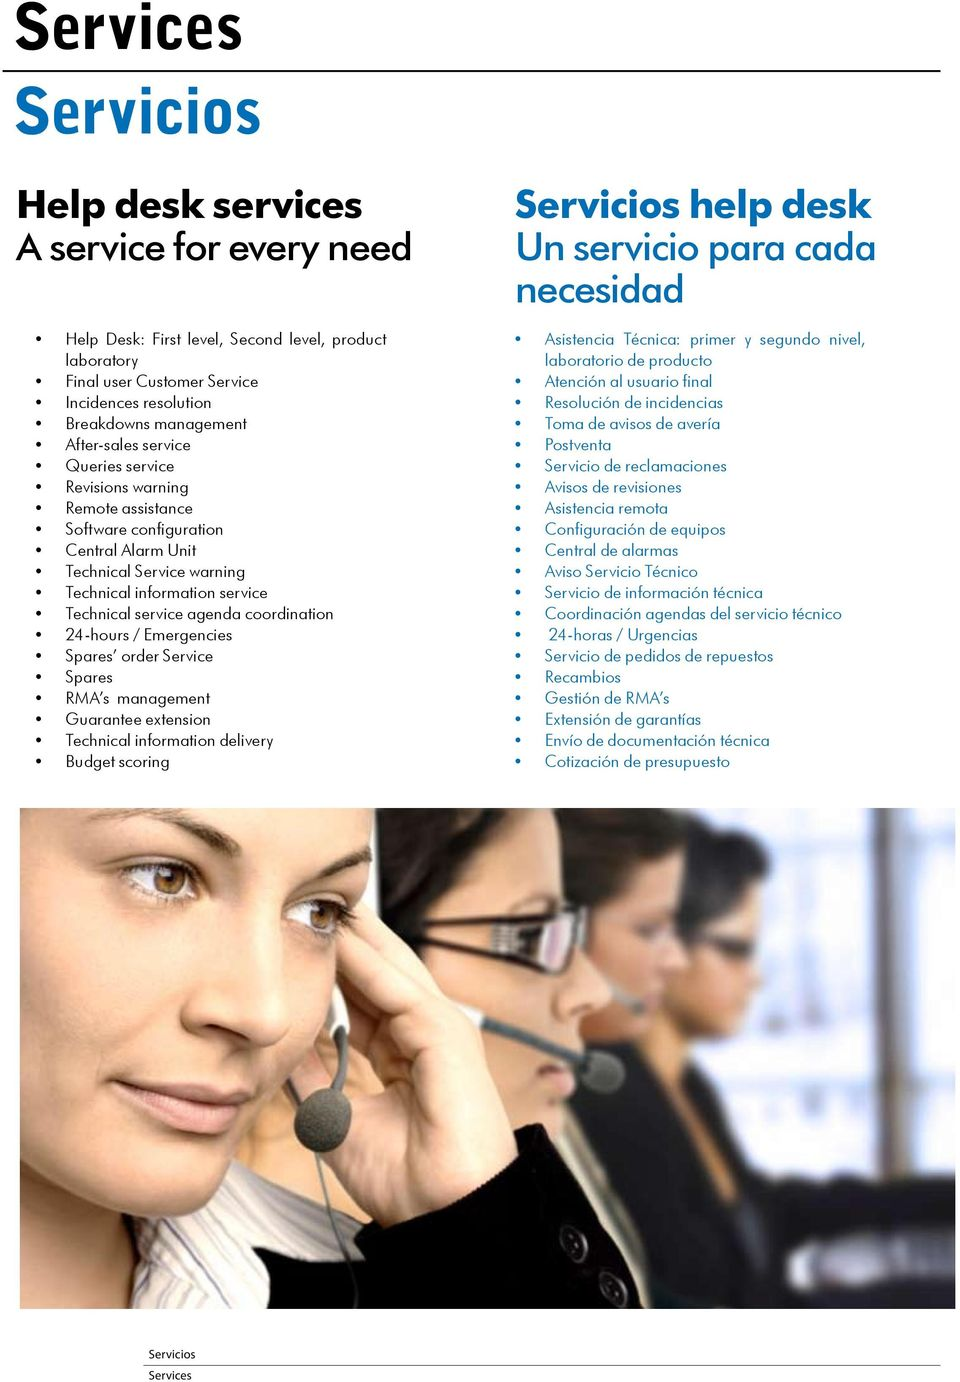 coordination 24-hours / Emergencies Spares order Service Spares RMA s management Guarantee extension Technical information delivery Budget scoring Servicios help desk Un servicio para cada necesidad